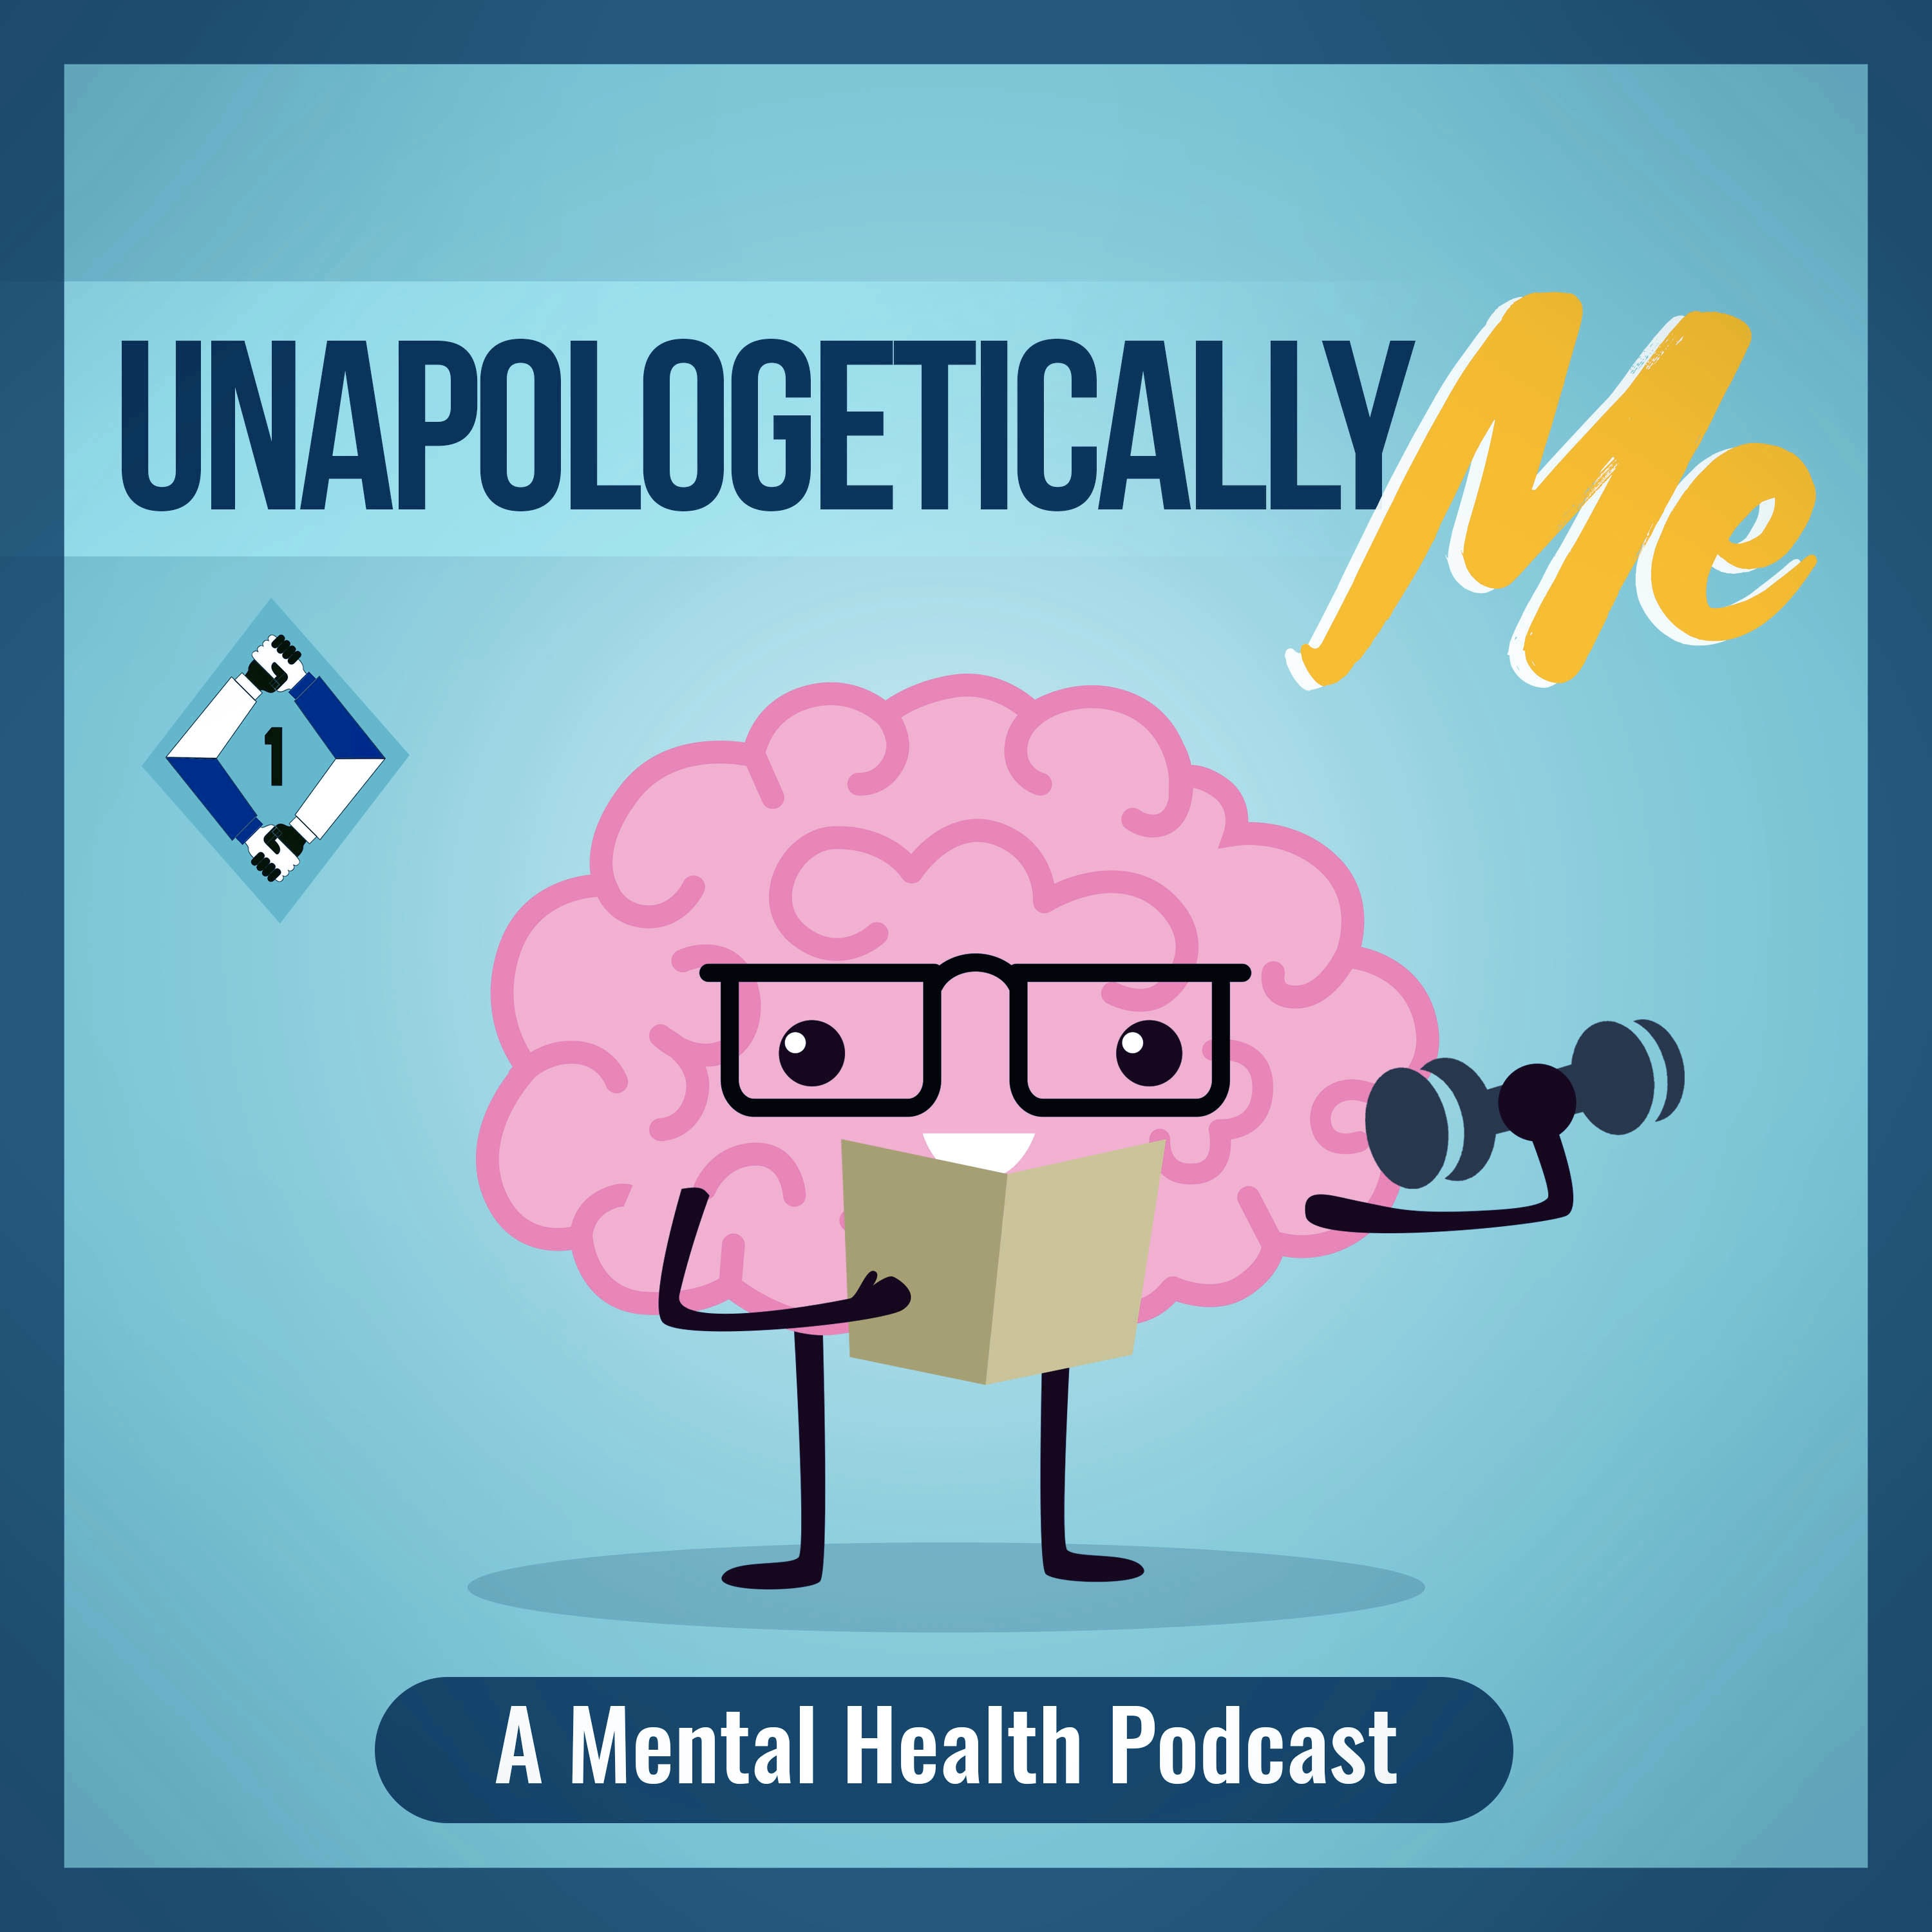 Unapologetically Me: A Mental Health Podcast